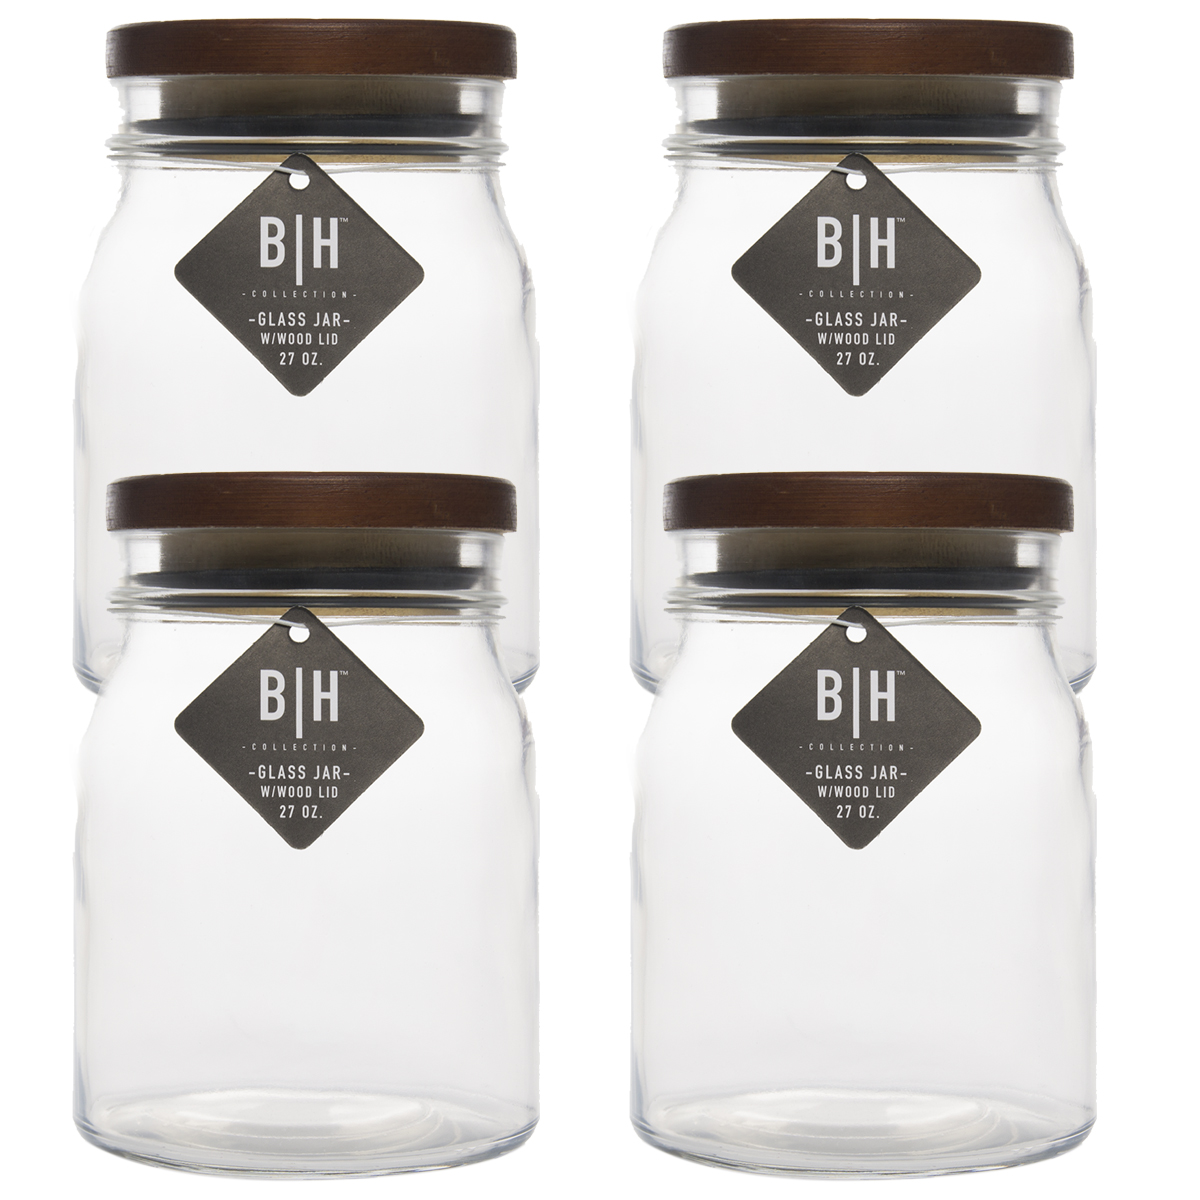 Blue Harbor (4 Pack) 27oz Clear Glass Storage Jars With Wood Lids Decorative Kitchen or Craft Jar Set by Blue Harbor